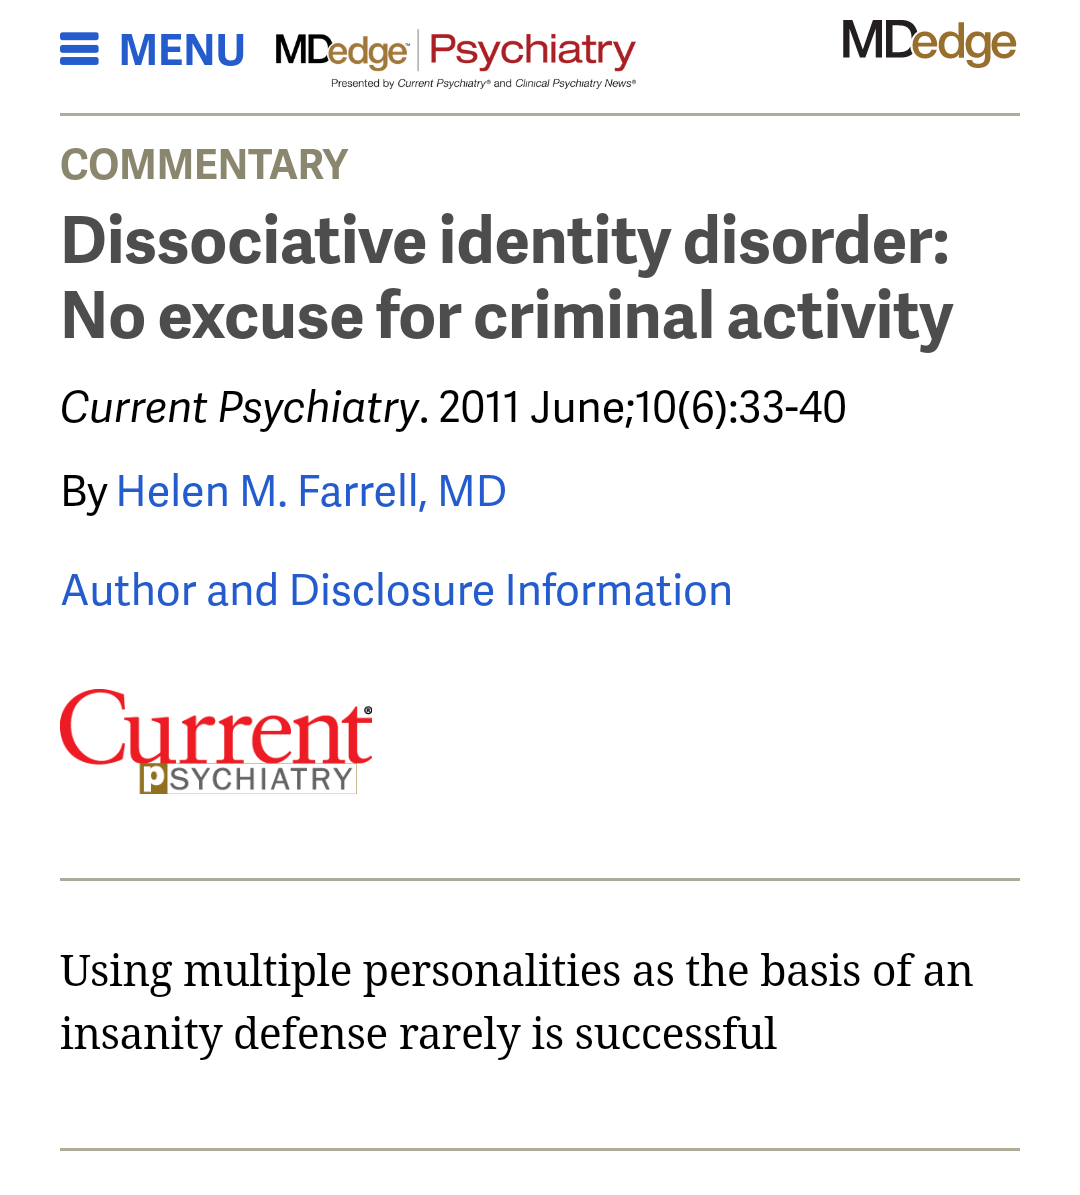 accountable for dissociation